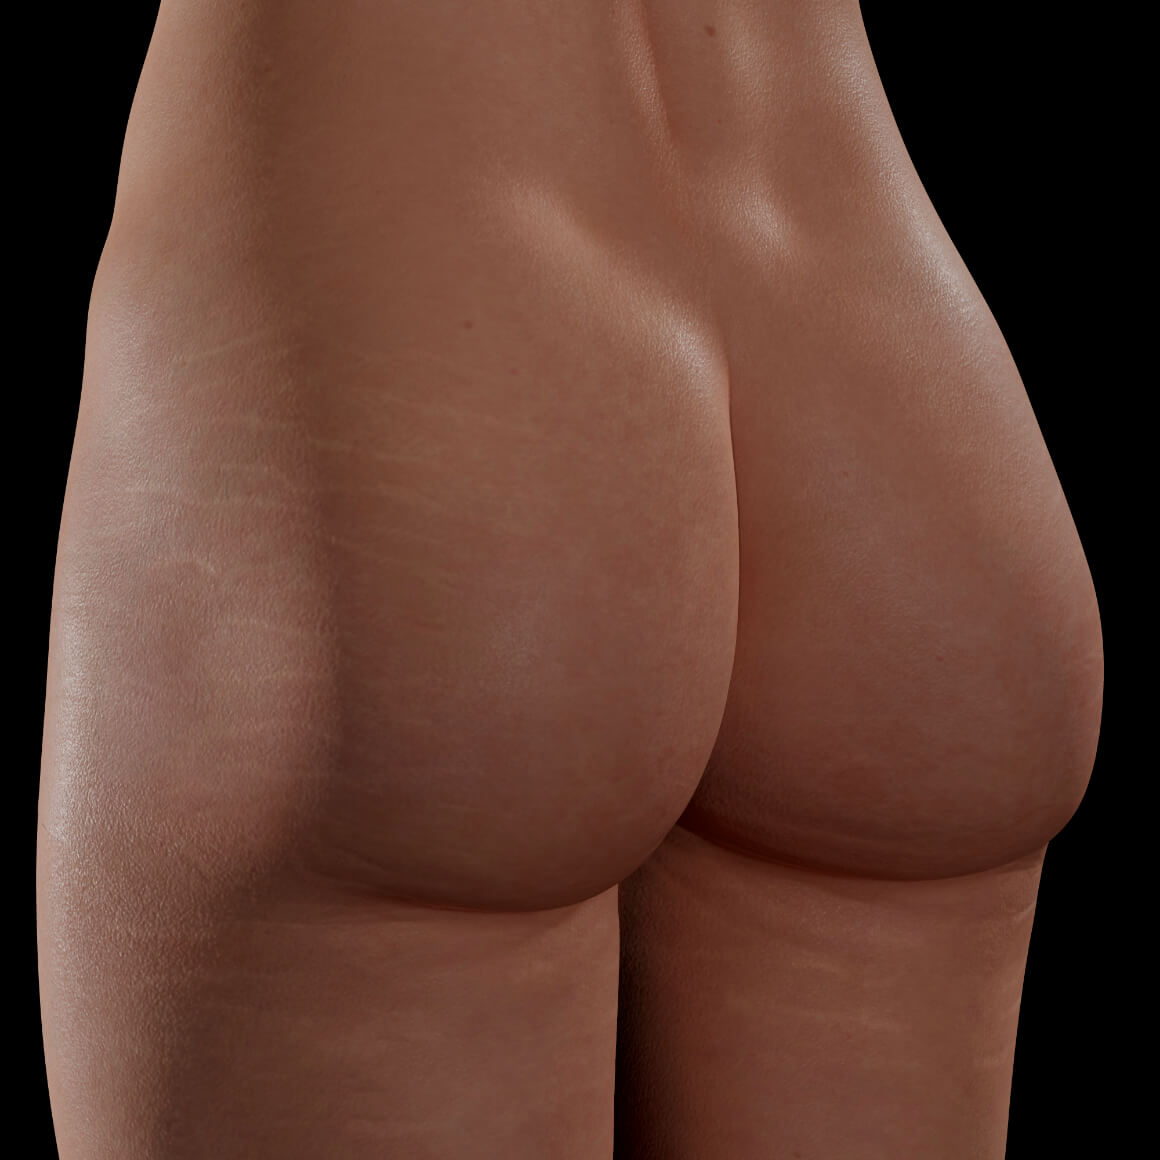 Angled Clinique Chloé female patient after PRP treatments for stretch mark reduction